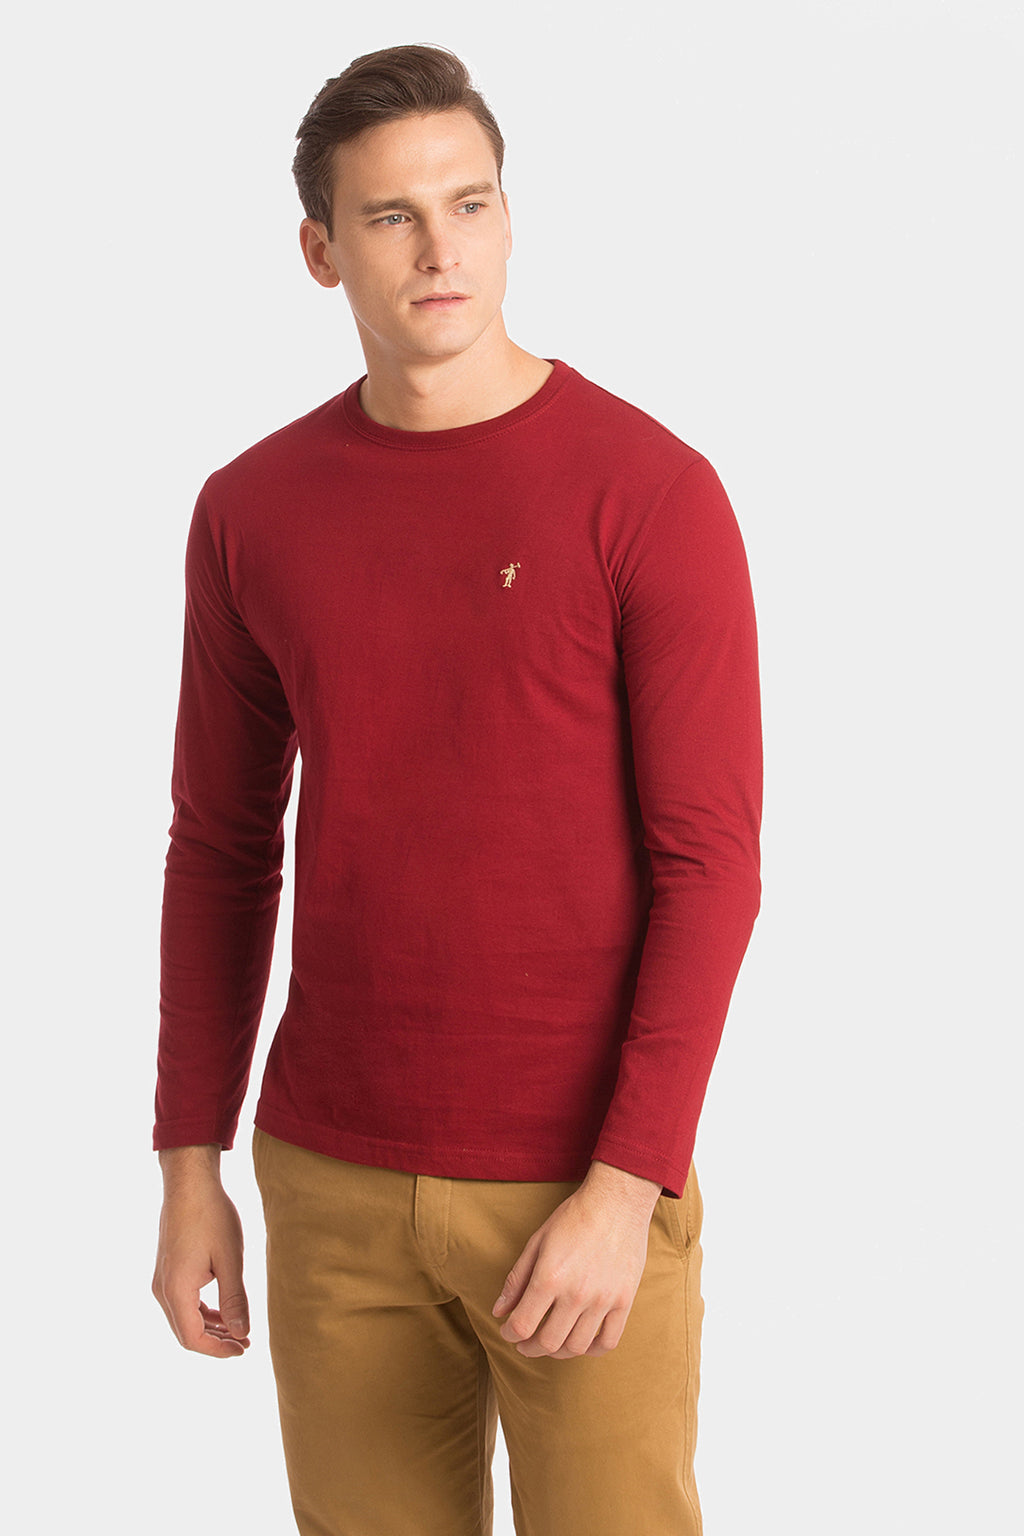 Maroon long sleeve T-shirt with embroidery